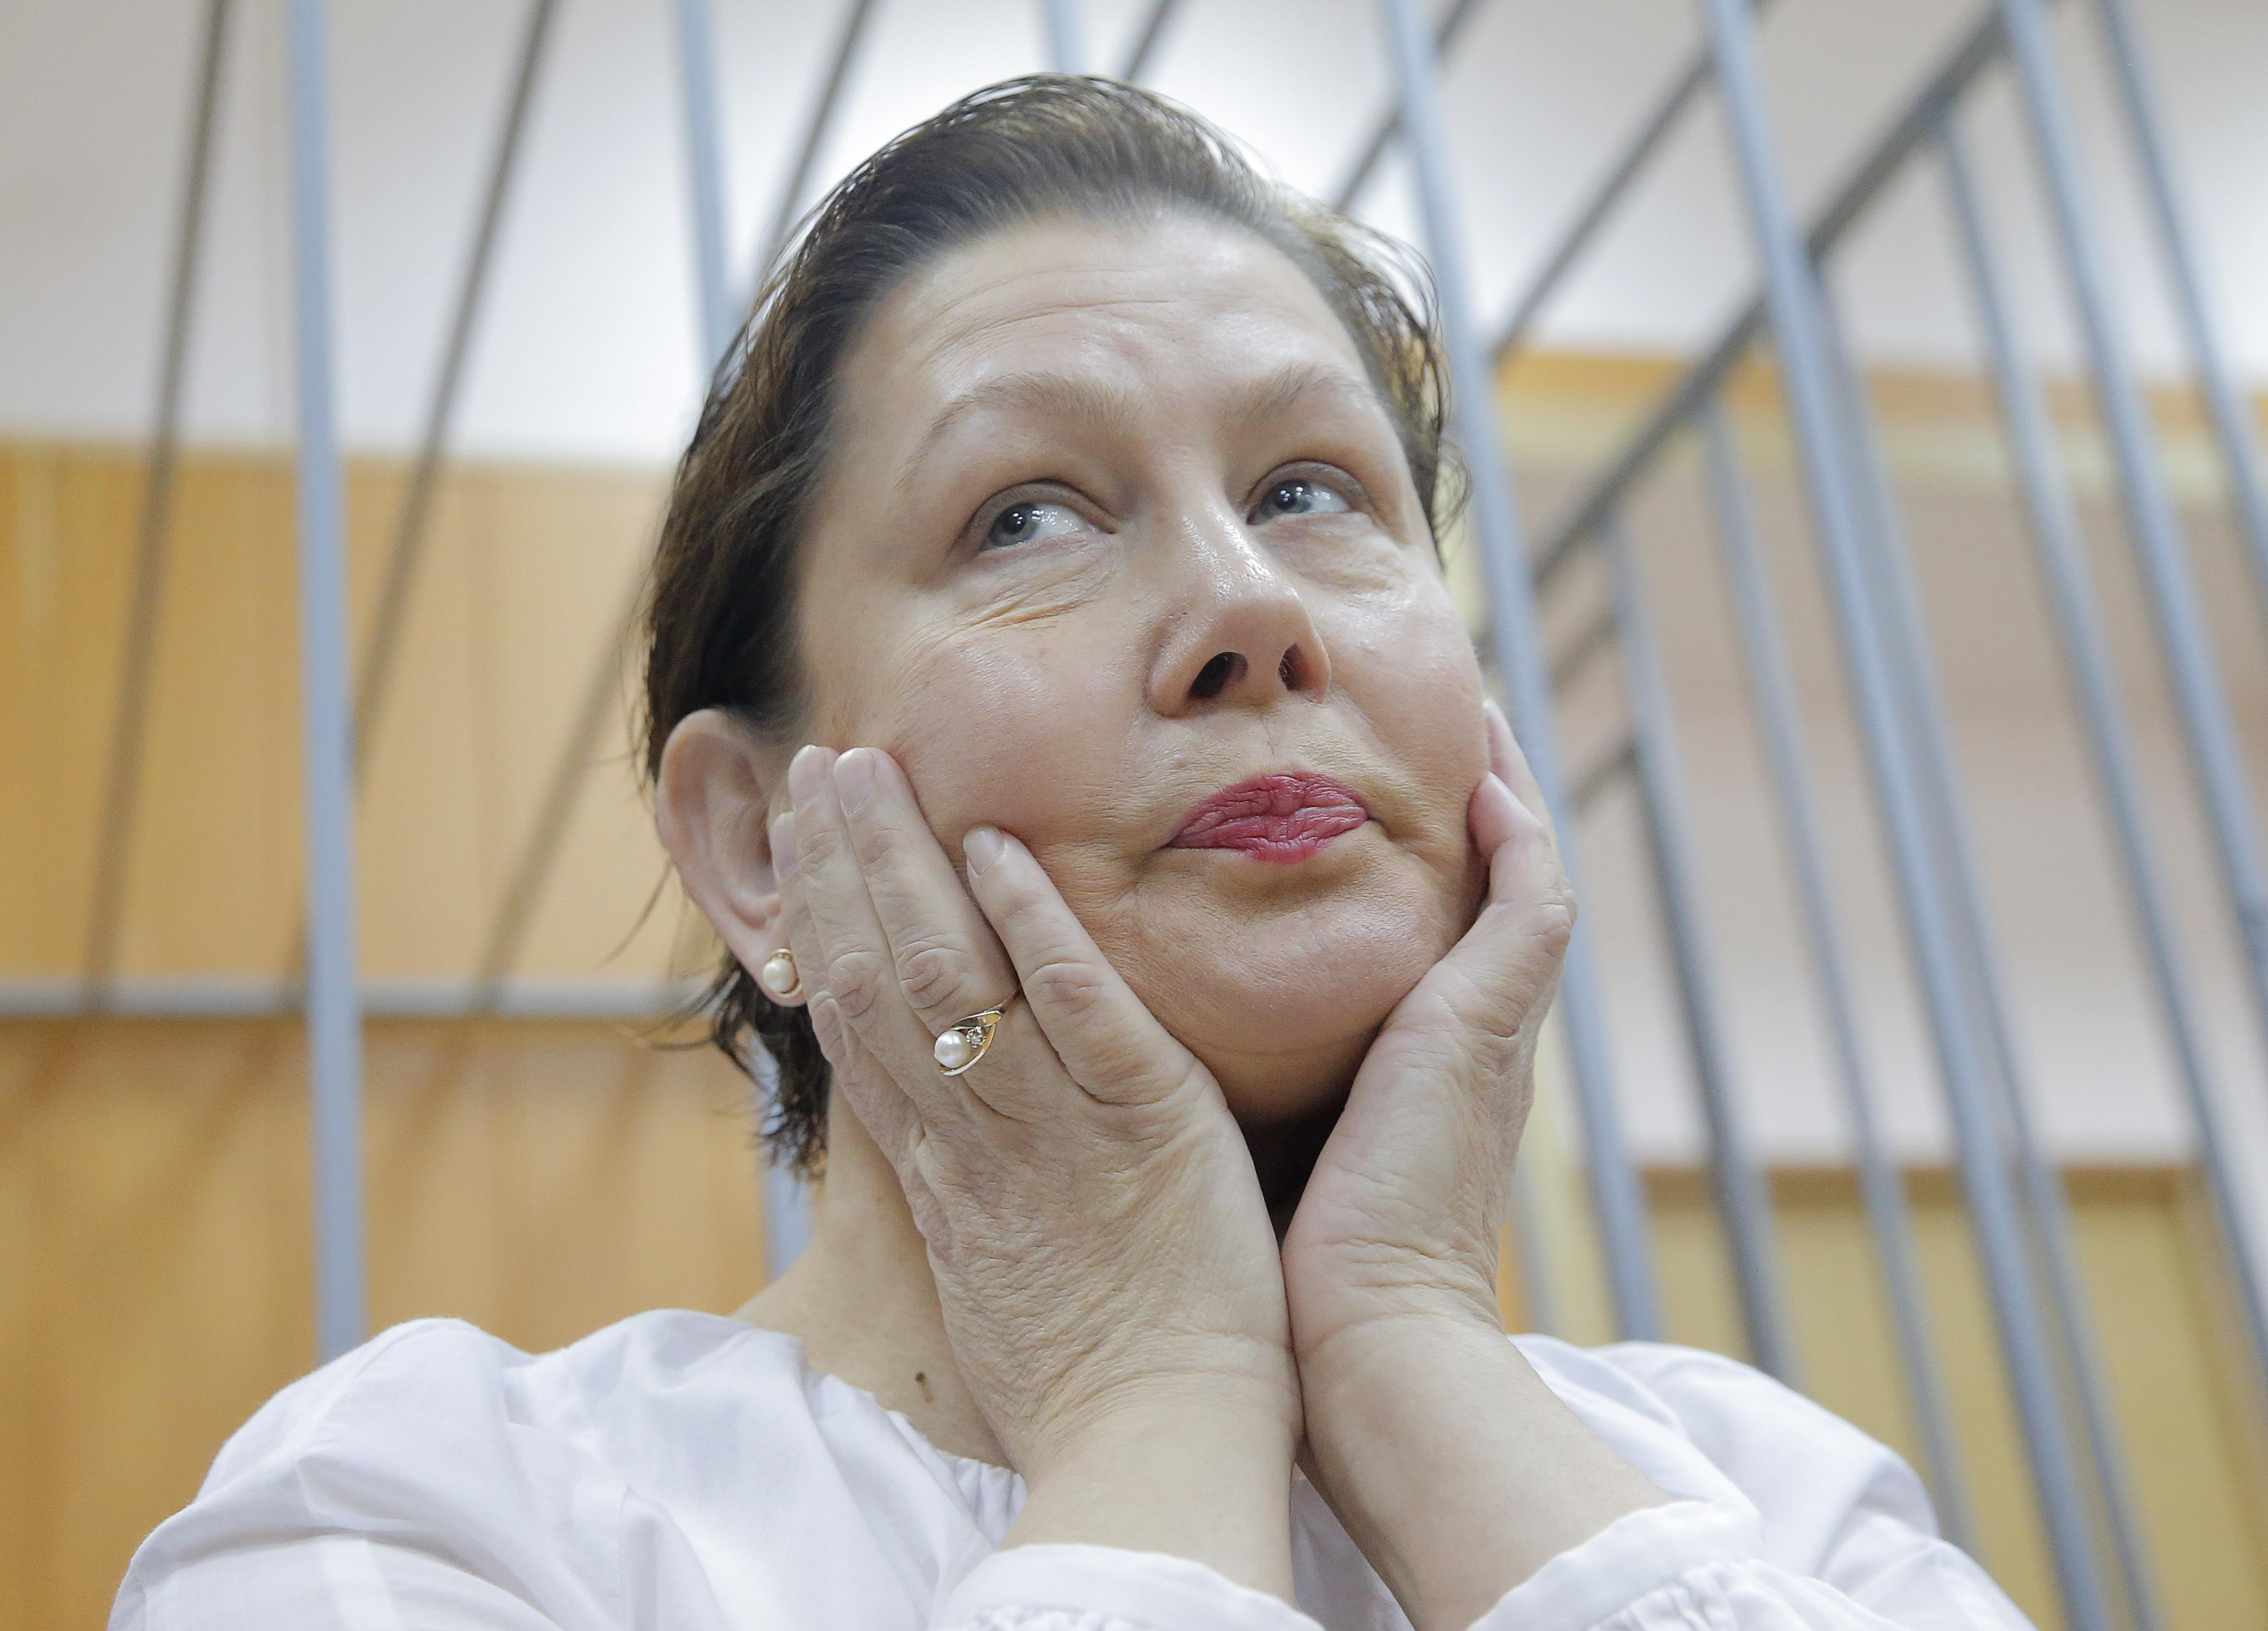 Head of Moscow's Ukrainian library convicted of incitement against Russians